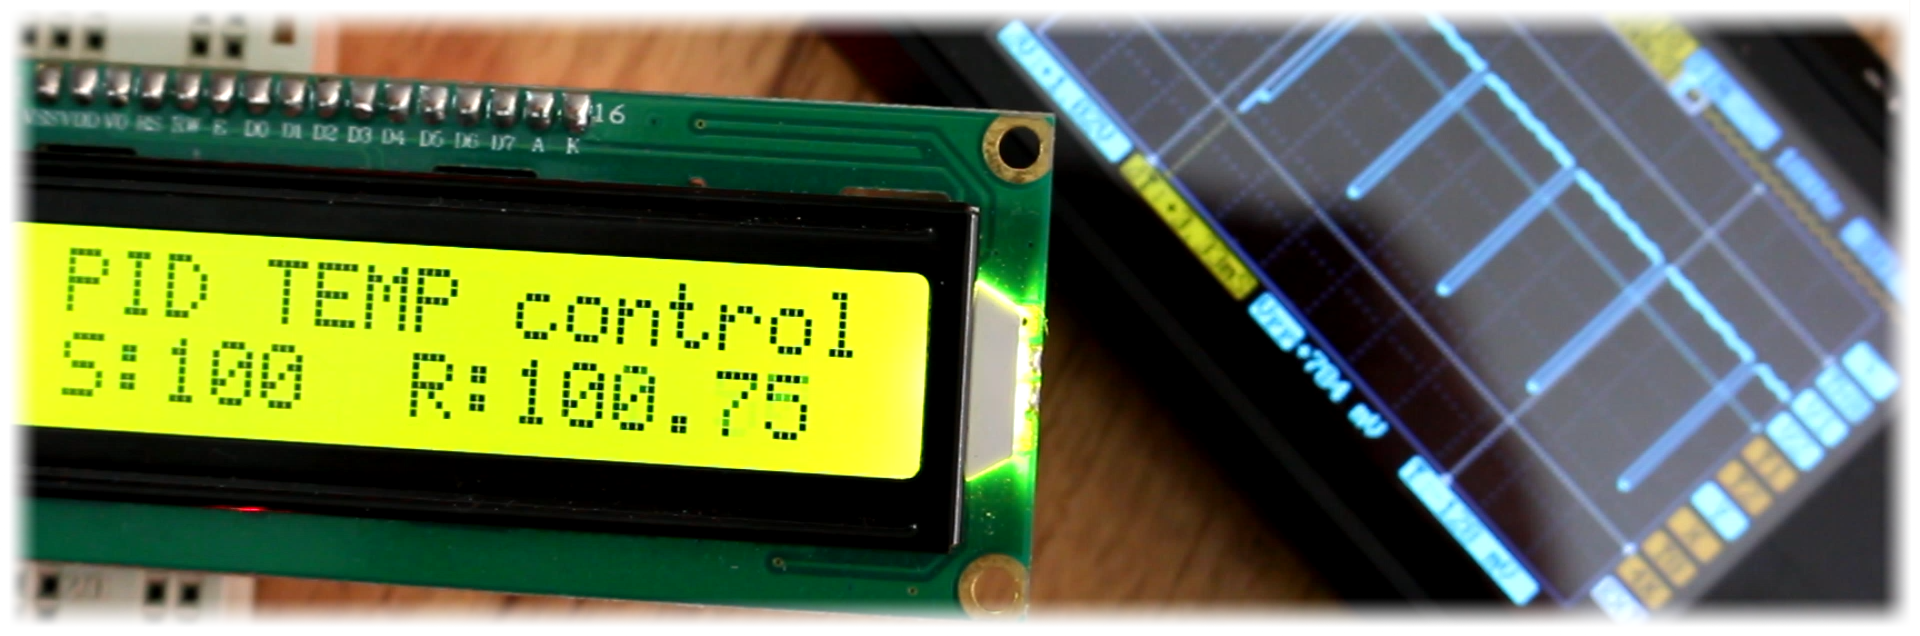 Temperature Pid Arduino Controller Tutorial Make Your Own With An